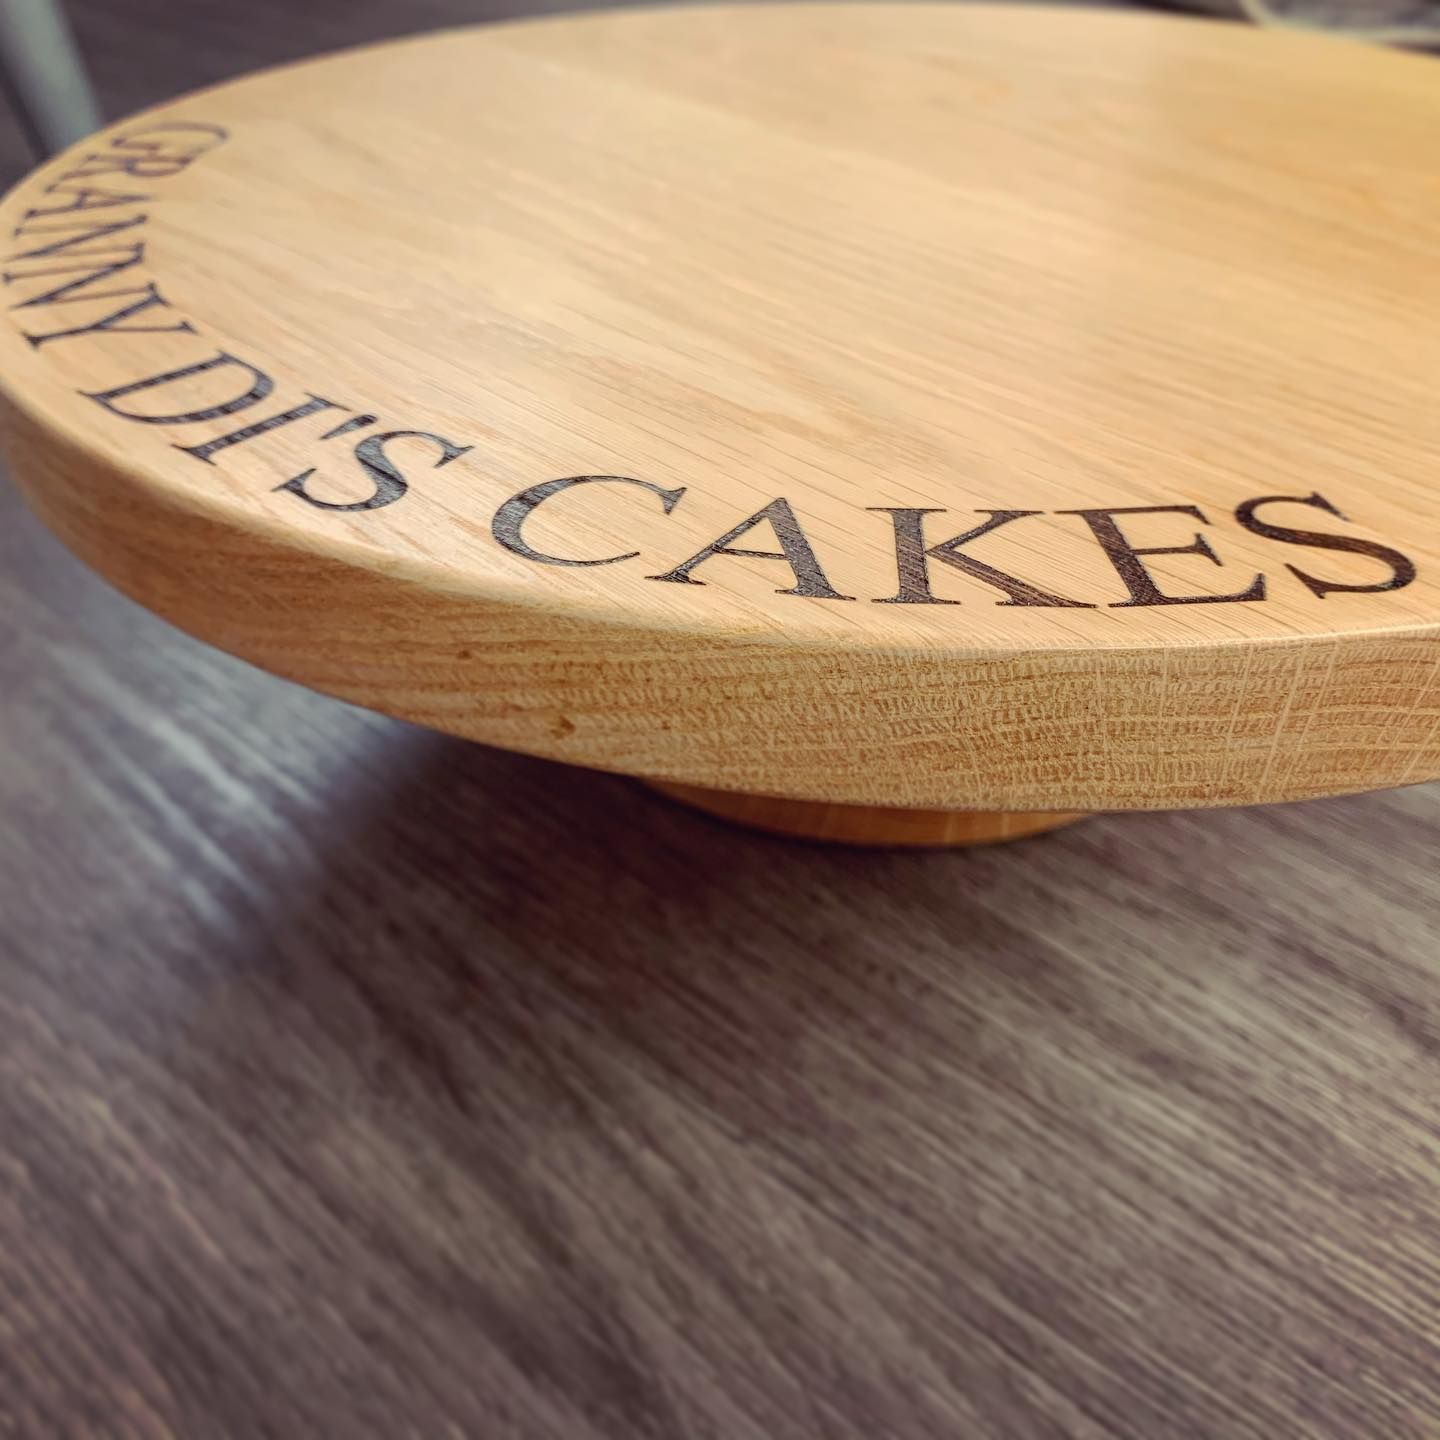 We made this bespoke cake stand commission just before Christmas and totally forgot to share it. A lovely personalised gift! ..#bake #bakeoff #cake #bespoke #personalise #oak #platter #kitchen #party #festive #specialgifts #specialoccasion